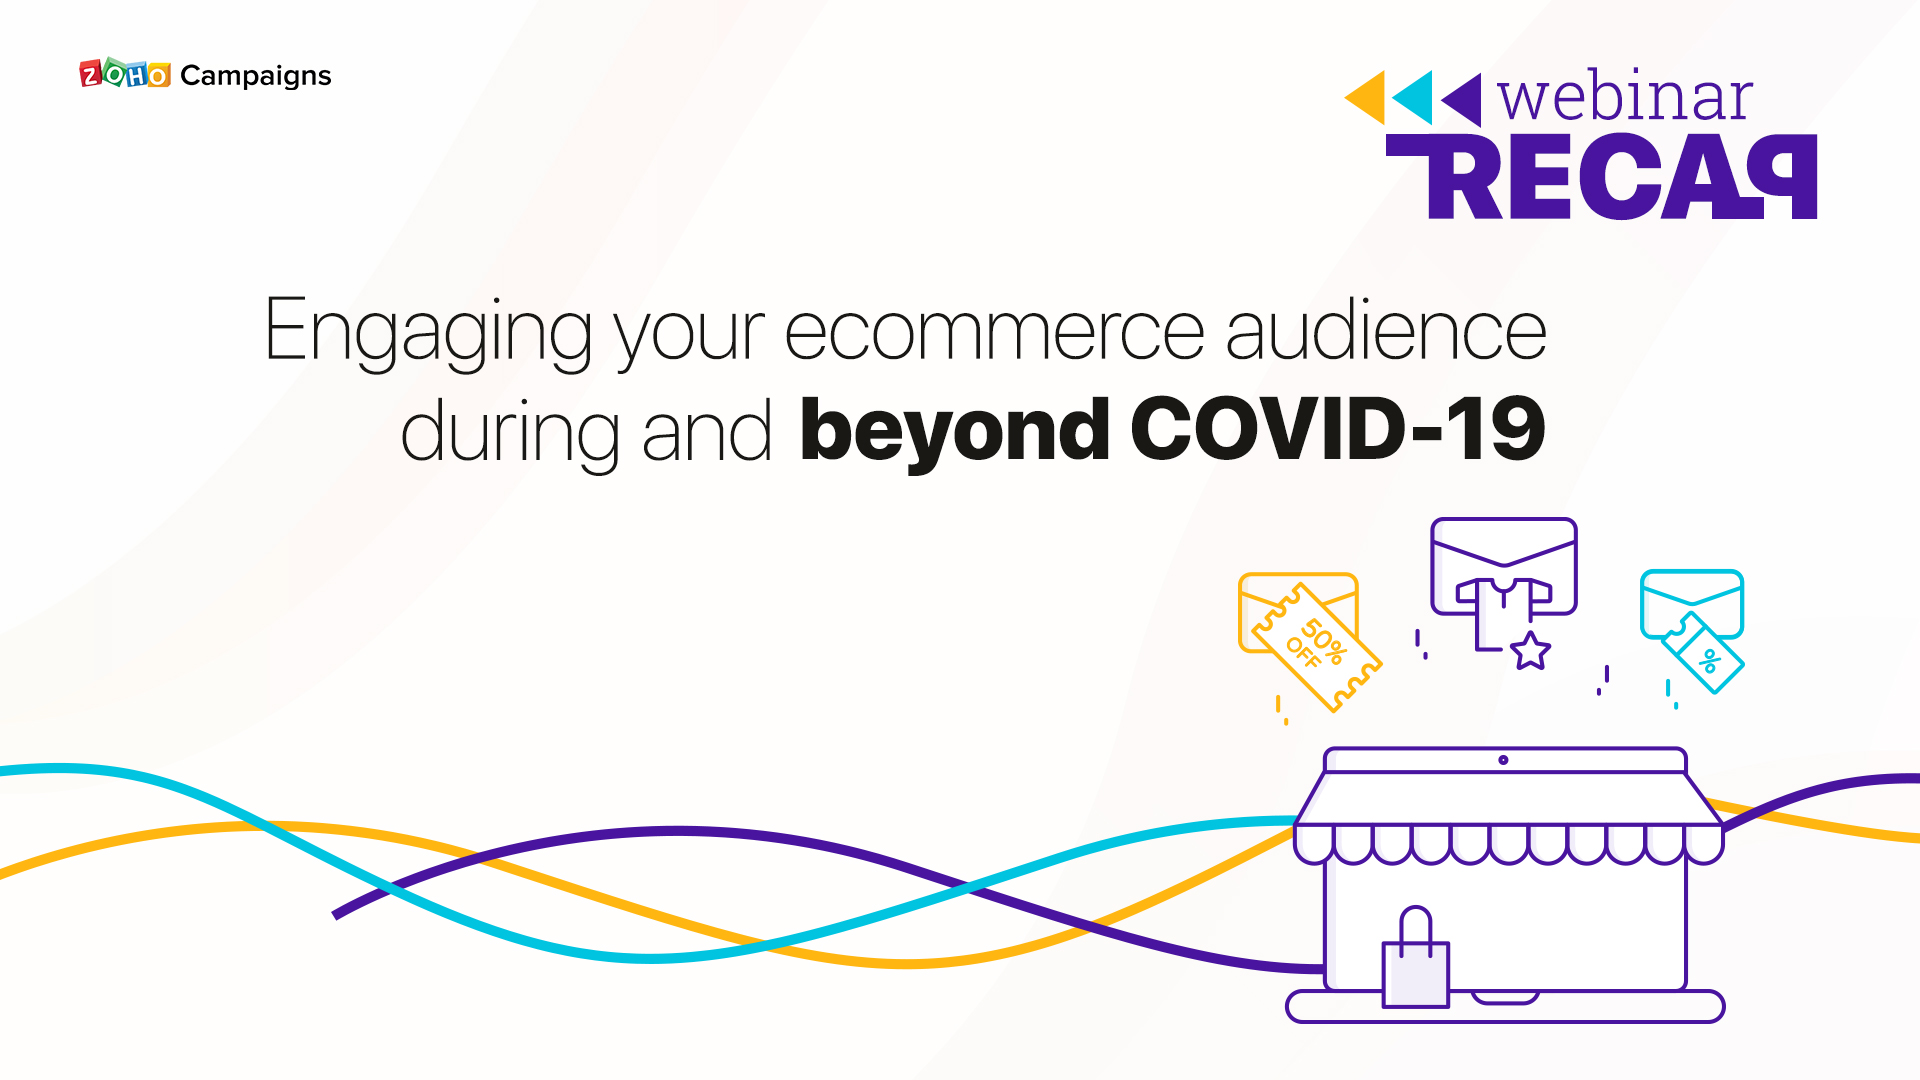 Webinar Recap: Engaging your ecommerce audience during and beyond COVID-19